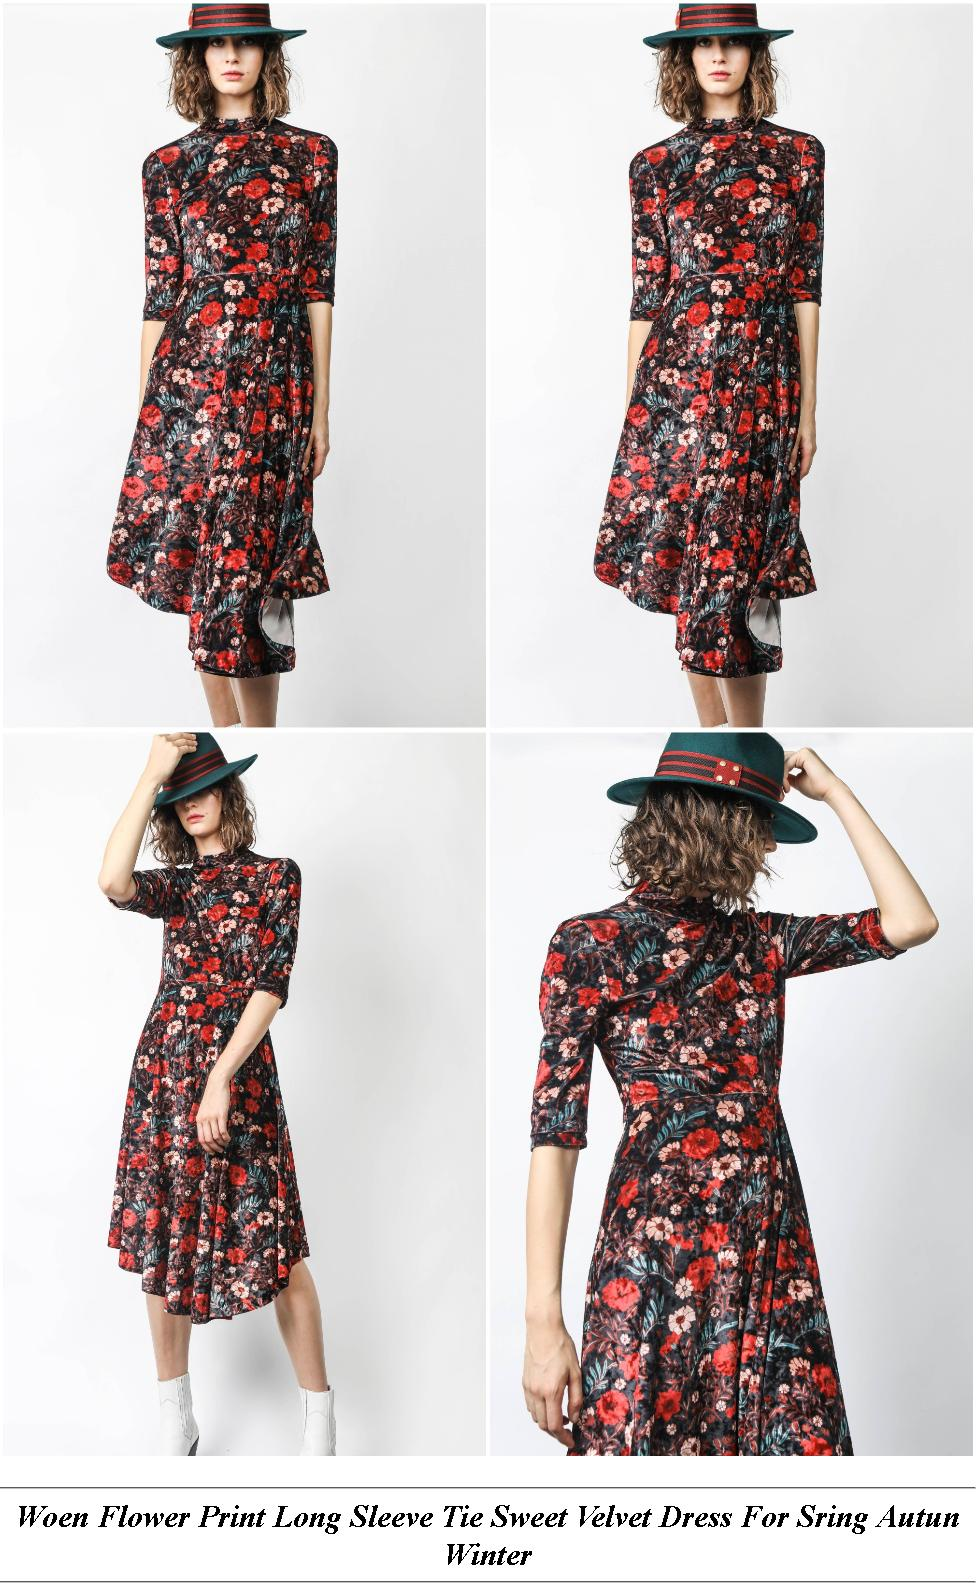 Homecoming Dresses - Winter Clothes Sale - Mini Dress - Cheap Womens Clothes